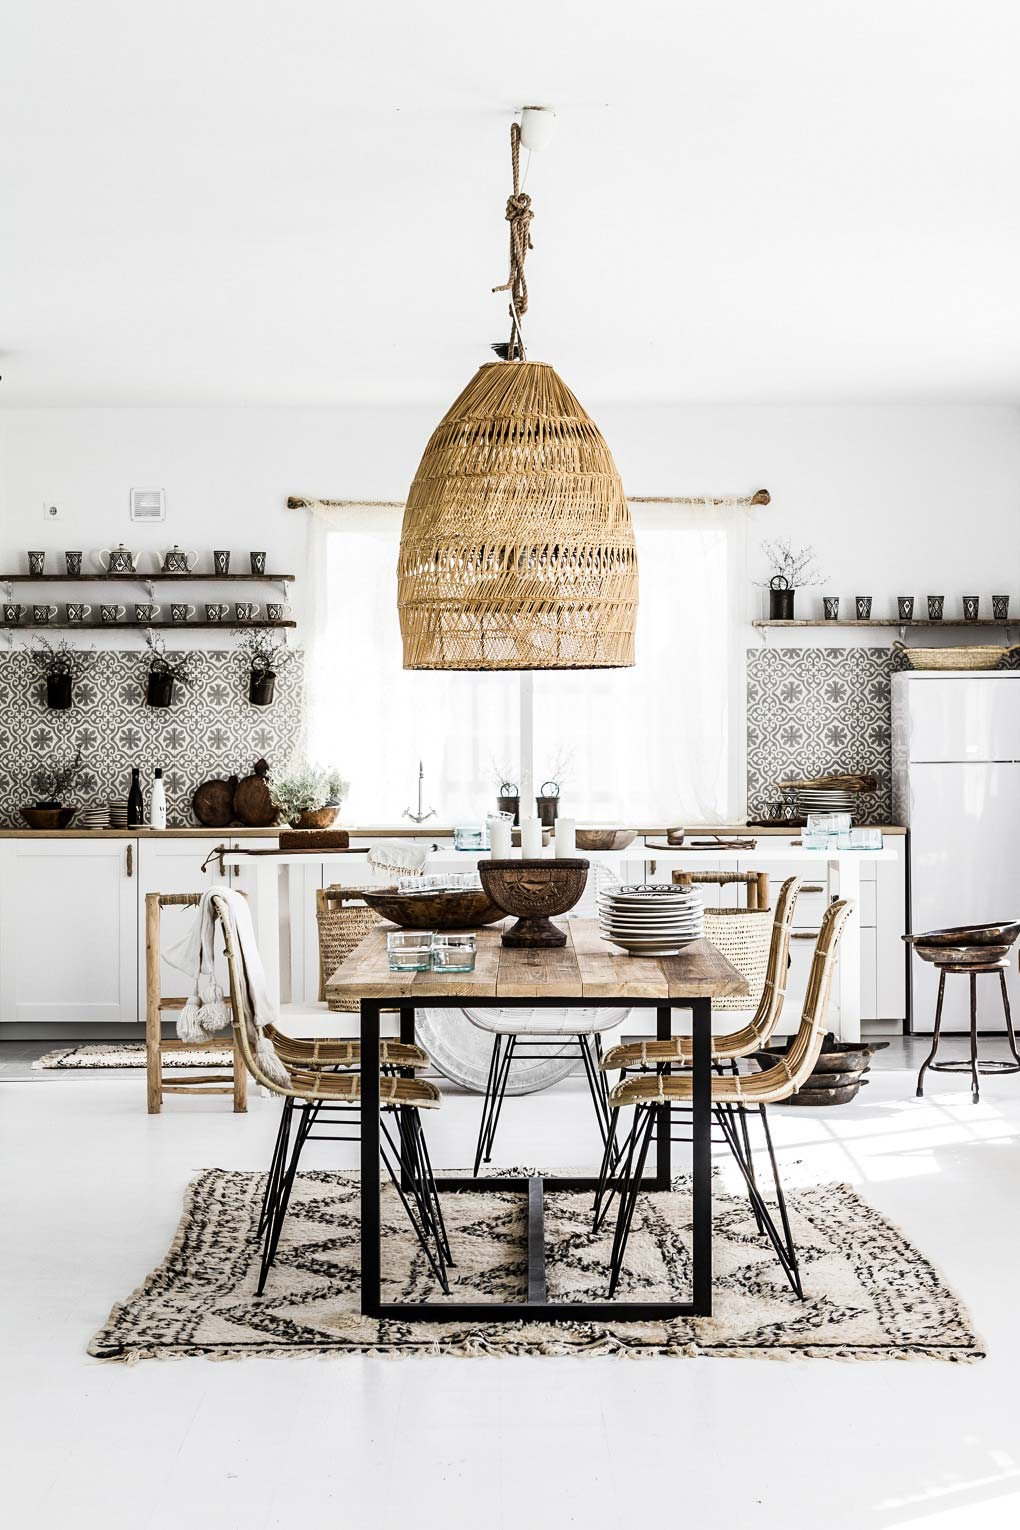 21 Bohemian Kitchen Design Ideas